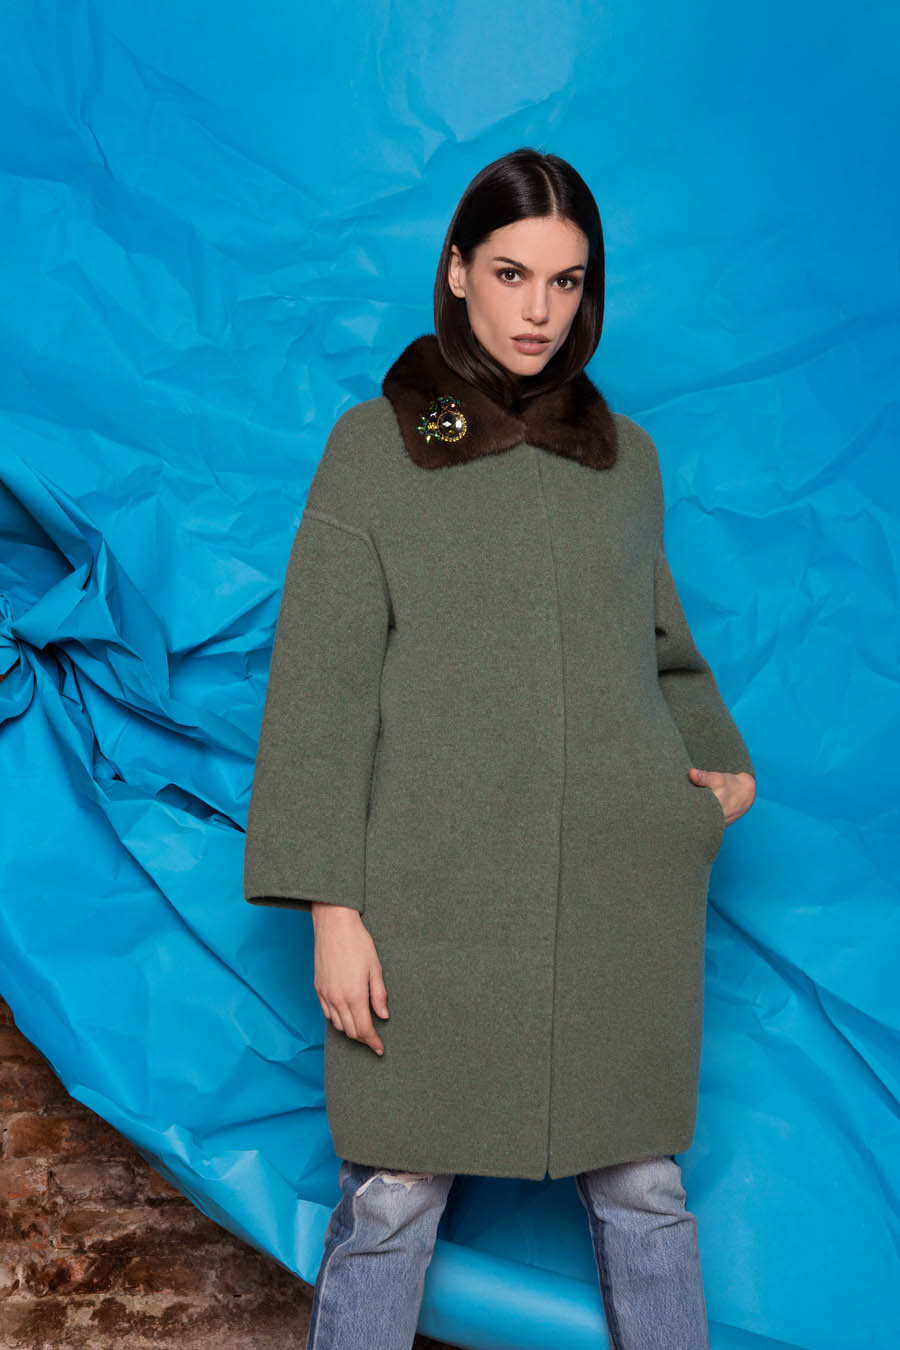 71 P1921 88 02 giovi pelliccia fur green - Fall Winter 2019-20